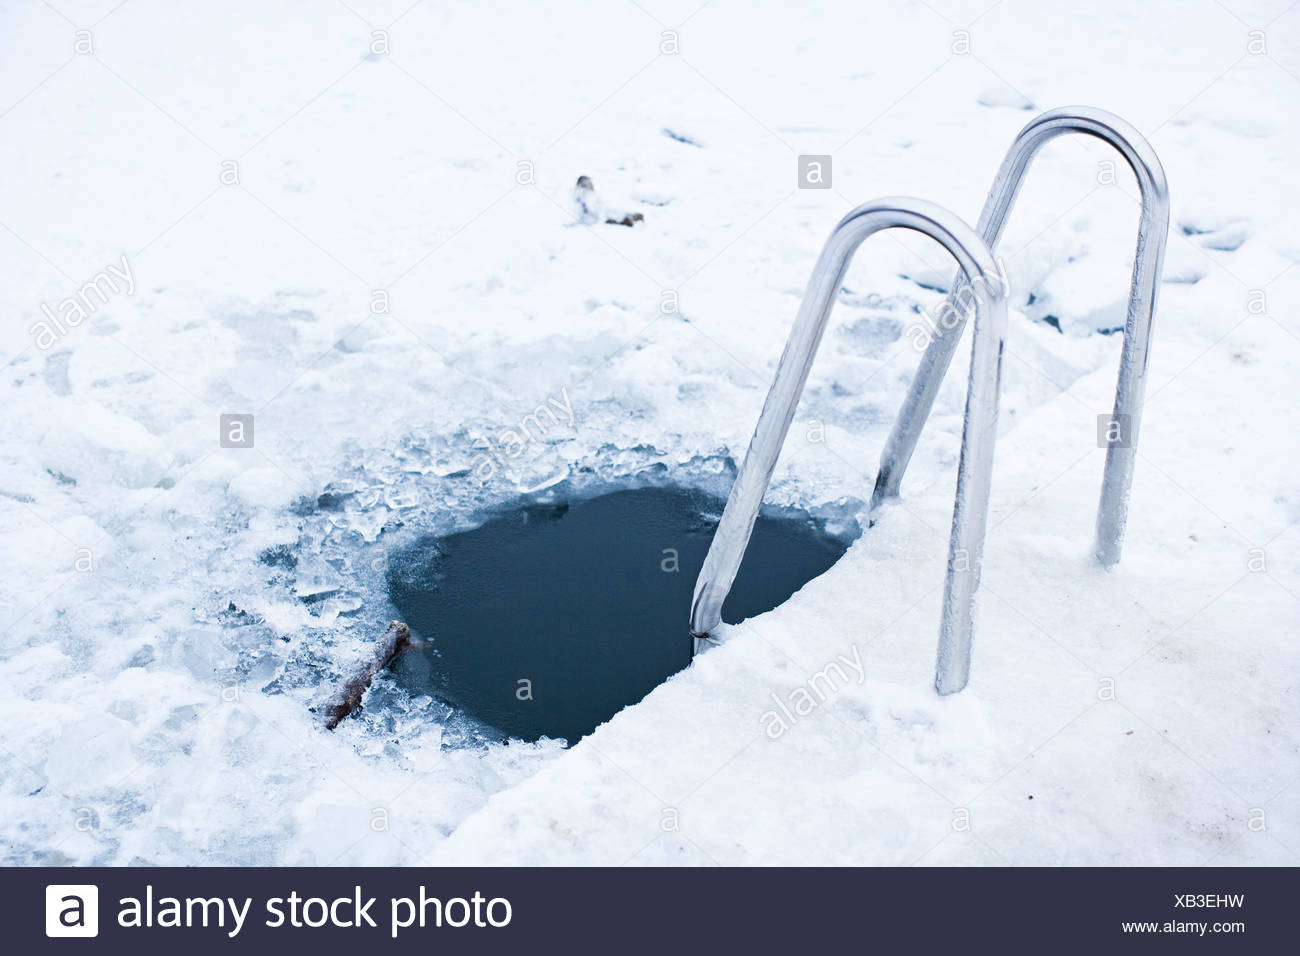 A hole in the ice, Stockholm, Sweden. - Stock Image